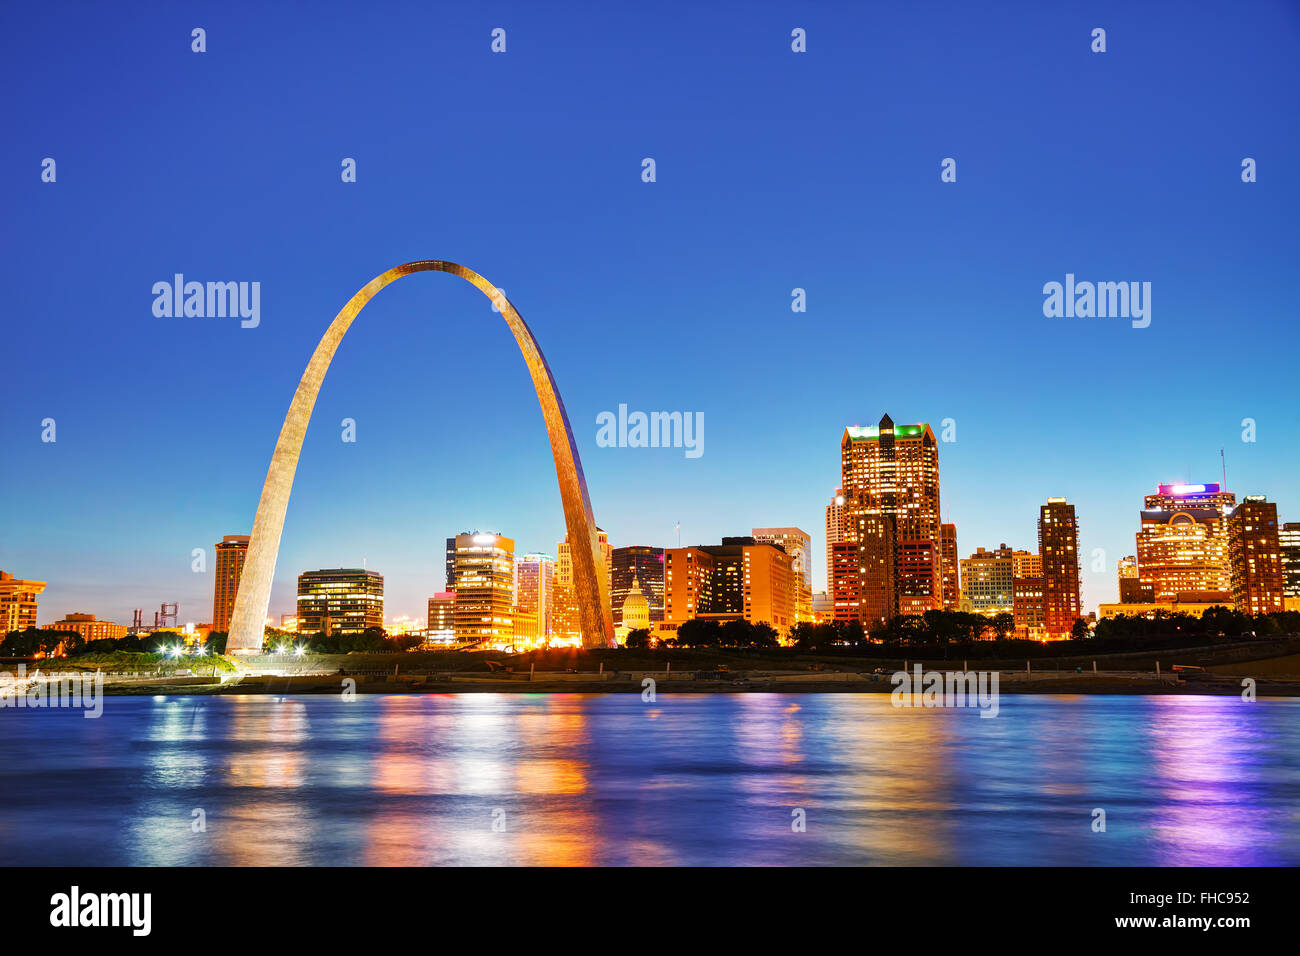 Downtown St Louis, MO with the Old Courthouse and the Gateway Arch at sunset - Stock Image